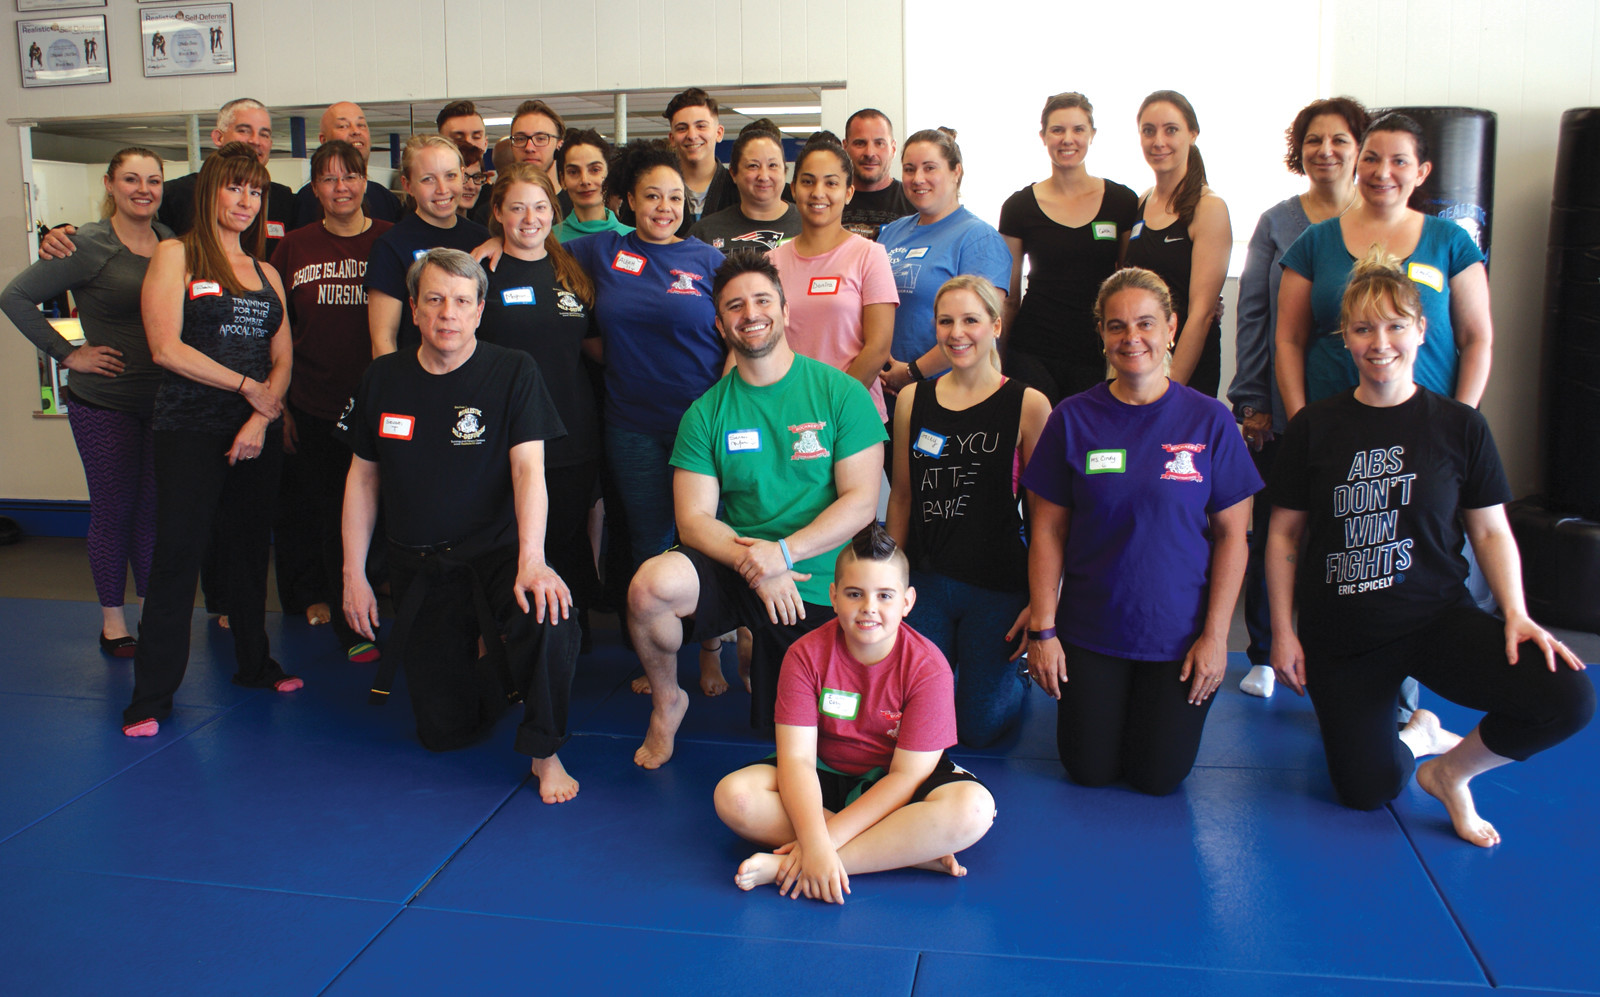 LEARNING SELF-DEFENSE: Pictured is Sensei Marc Bochner, owner of Bochner's Realistic Self-Defense along with participants at the dojo's free Empower Mom program.